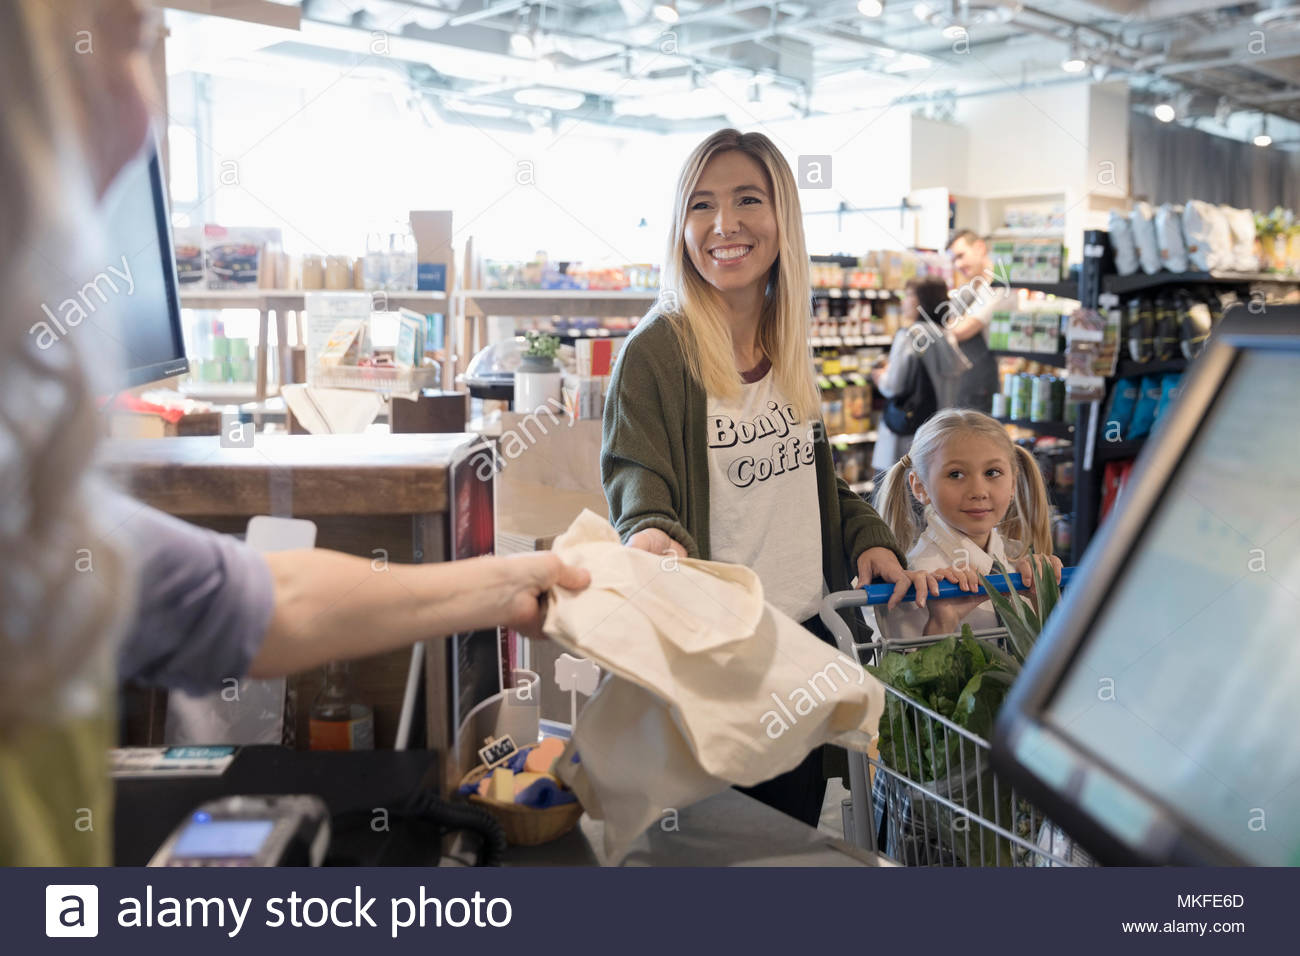 Mother and daughter at grocery store checkout - Stock Image